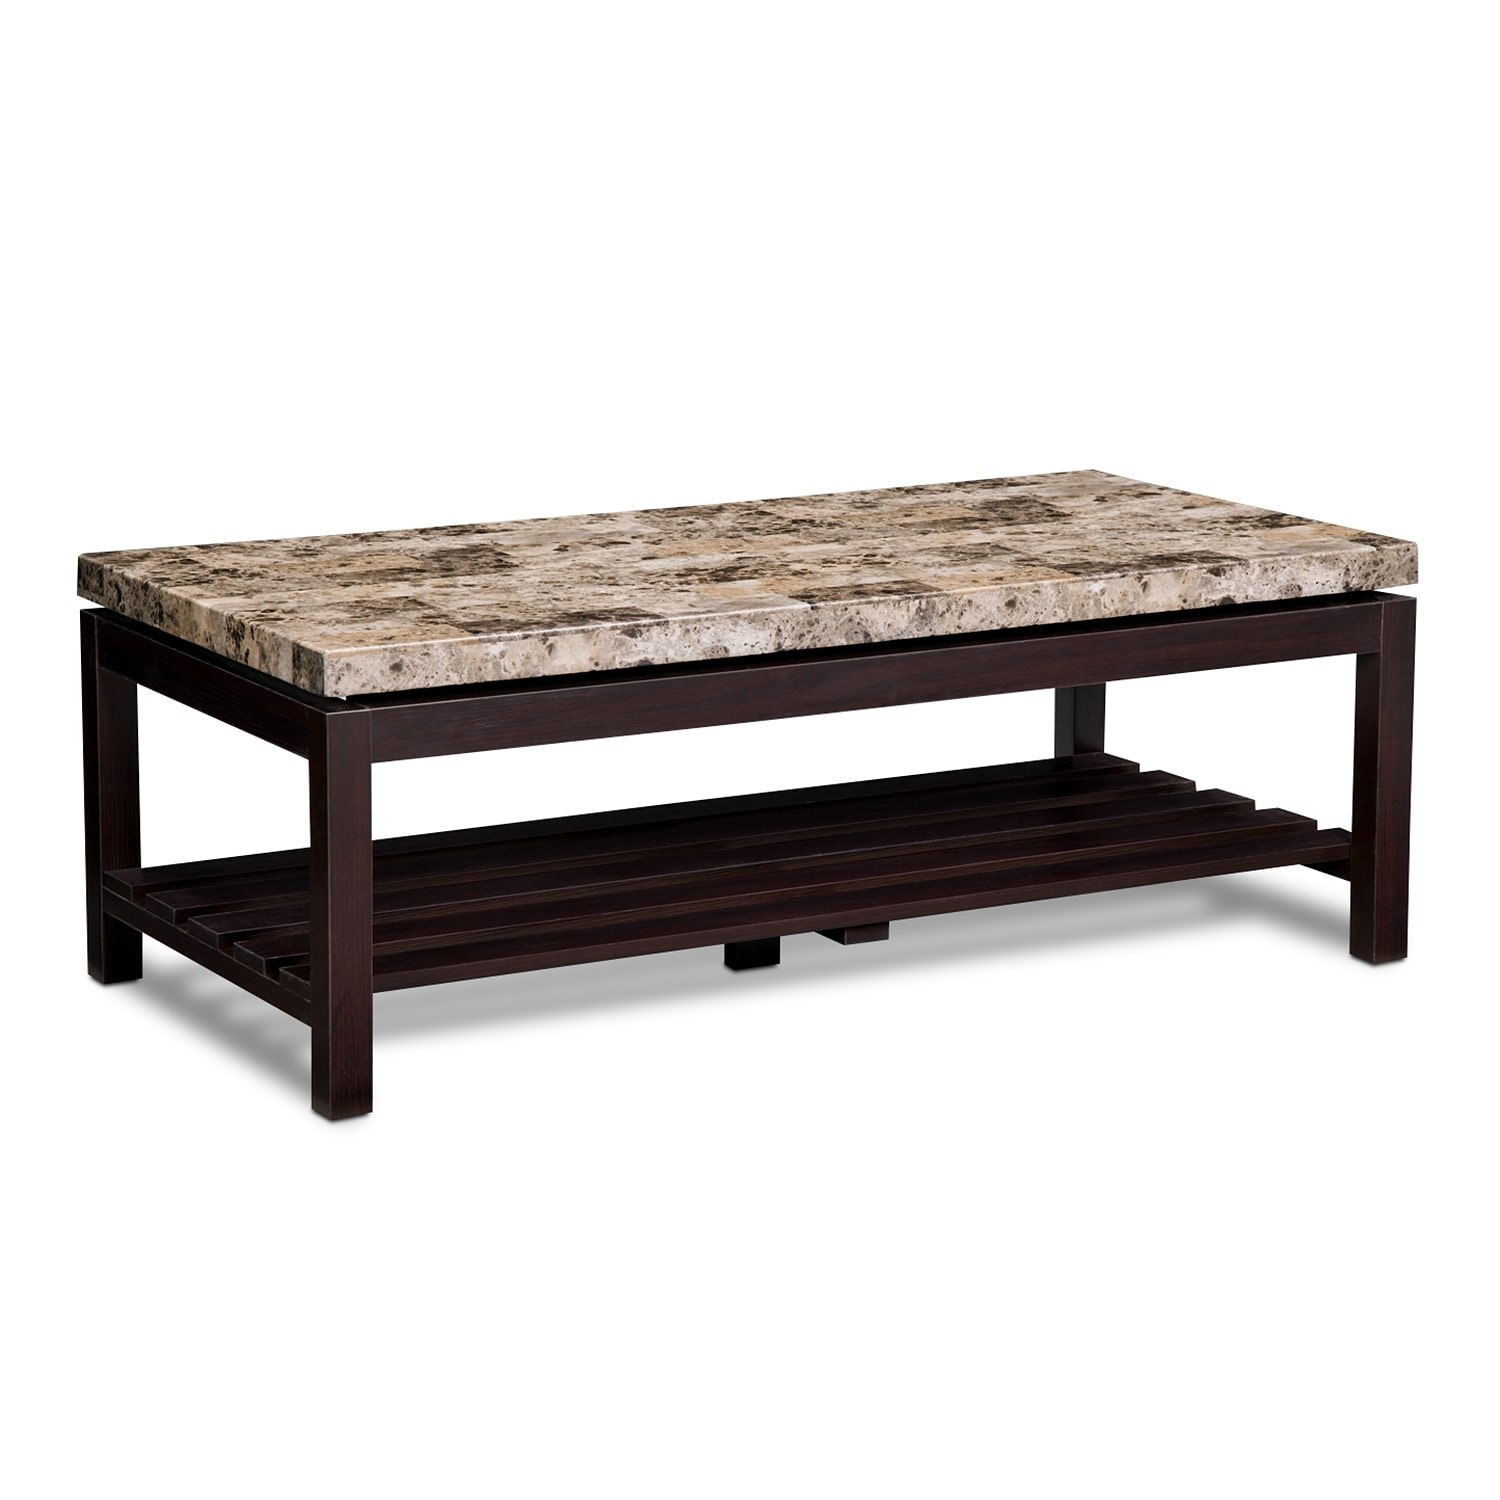 Accent and Occasional Furniture - Audra Coffee Table